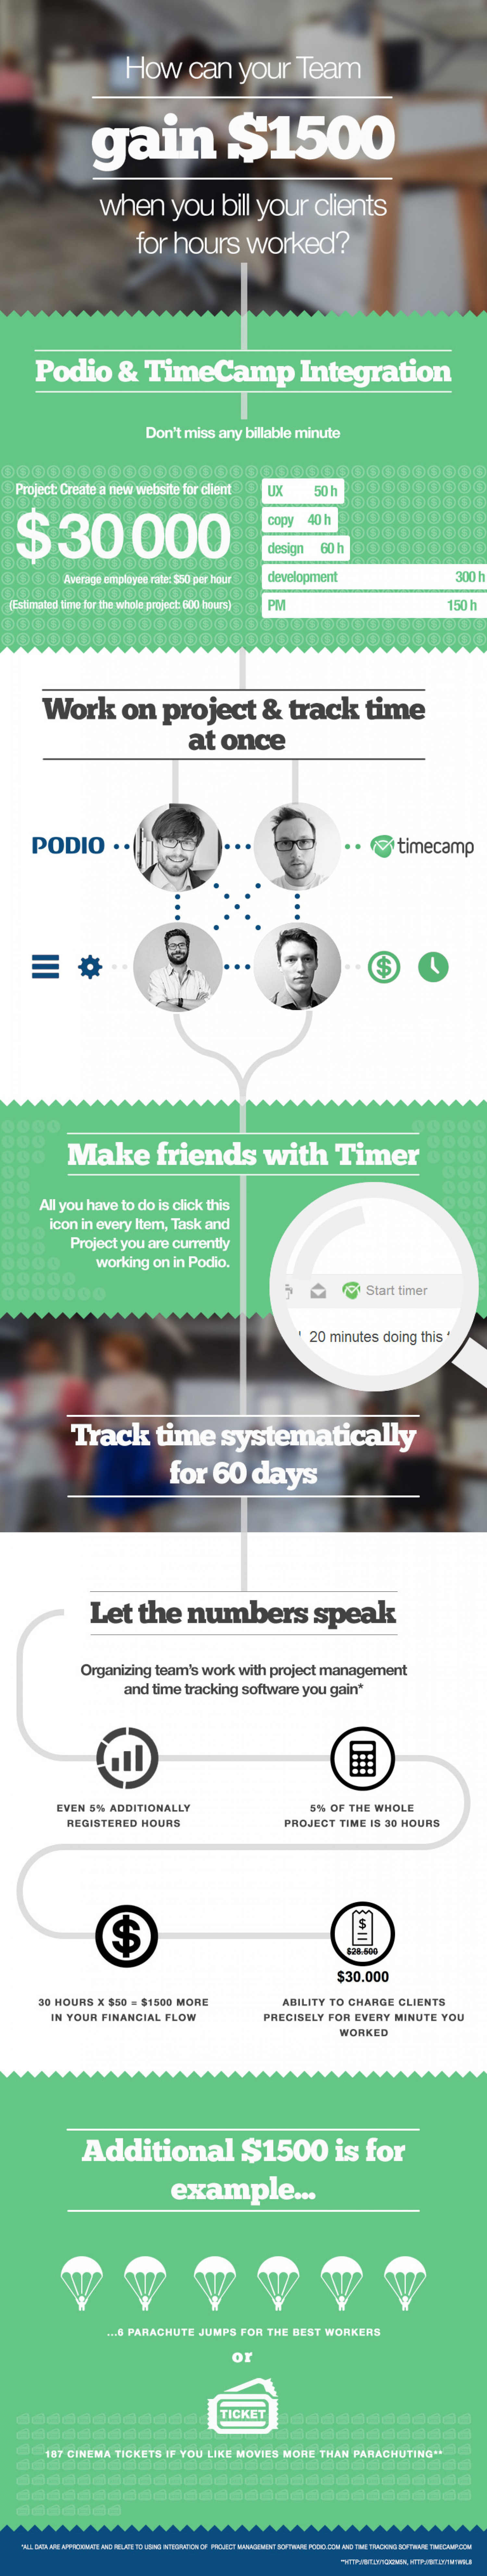 How Can Your Team Gain $1500 When You Bill Your Clients for Hours Worked? Infographic